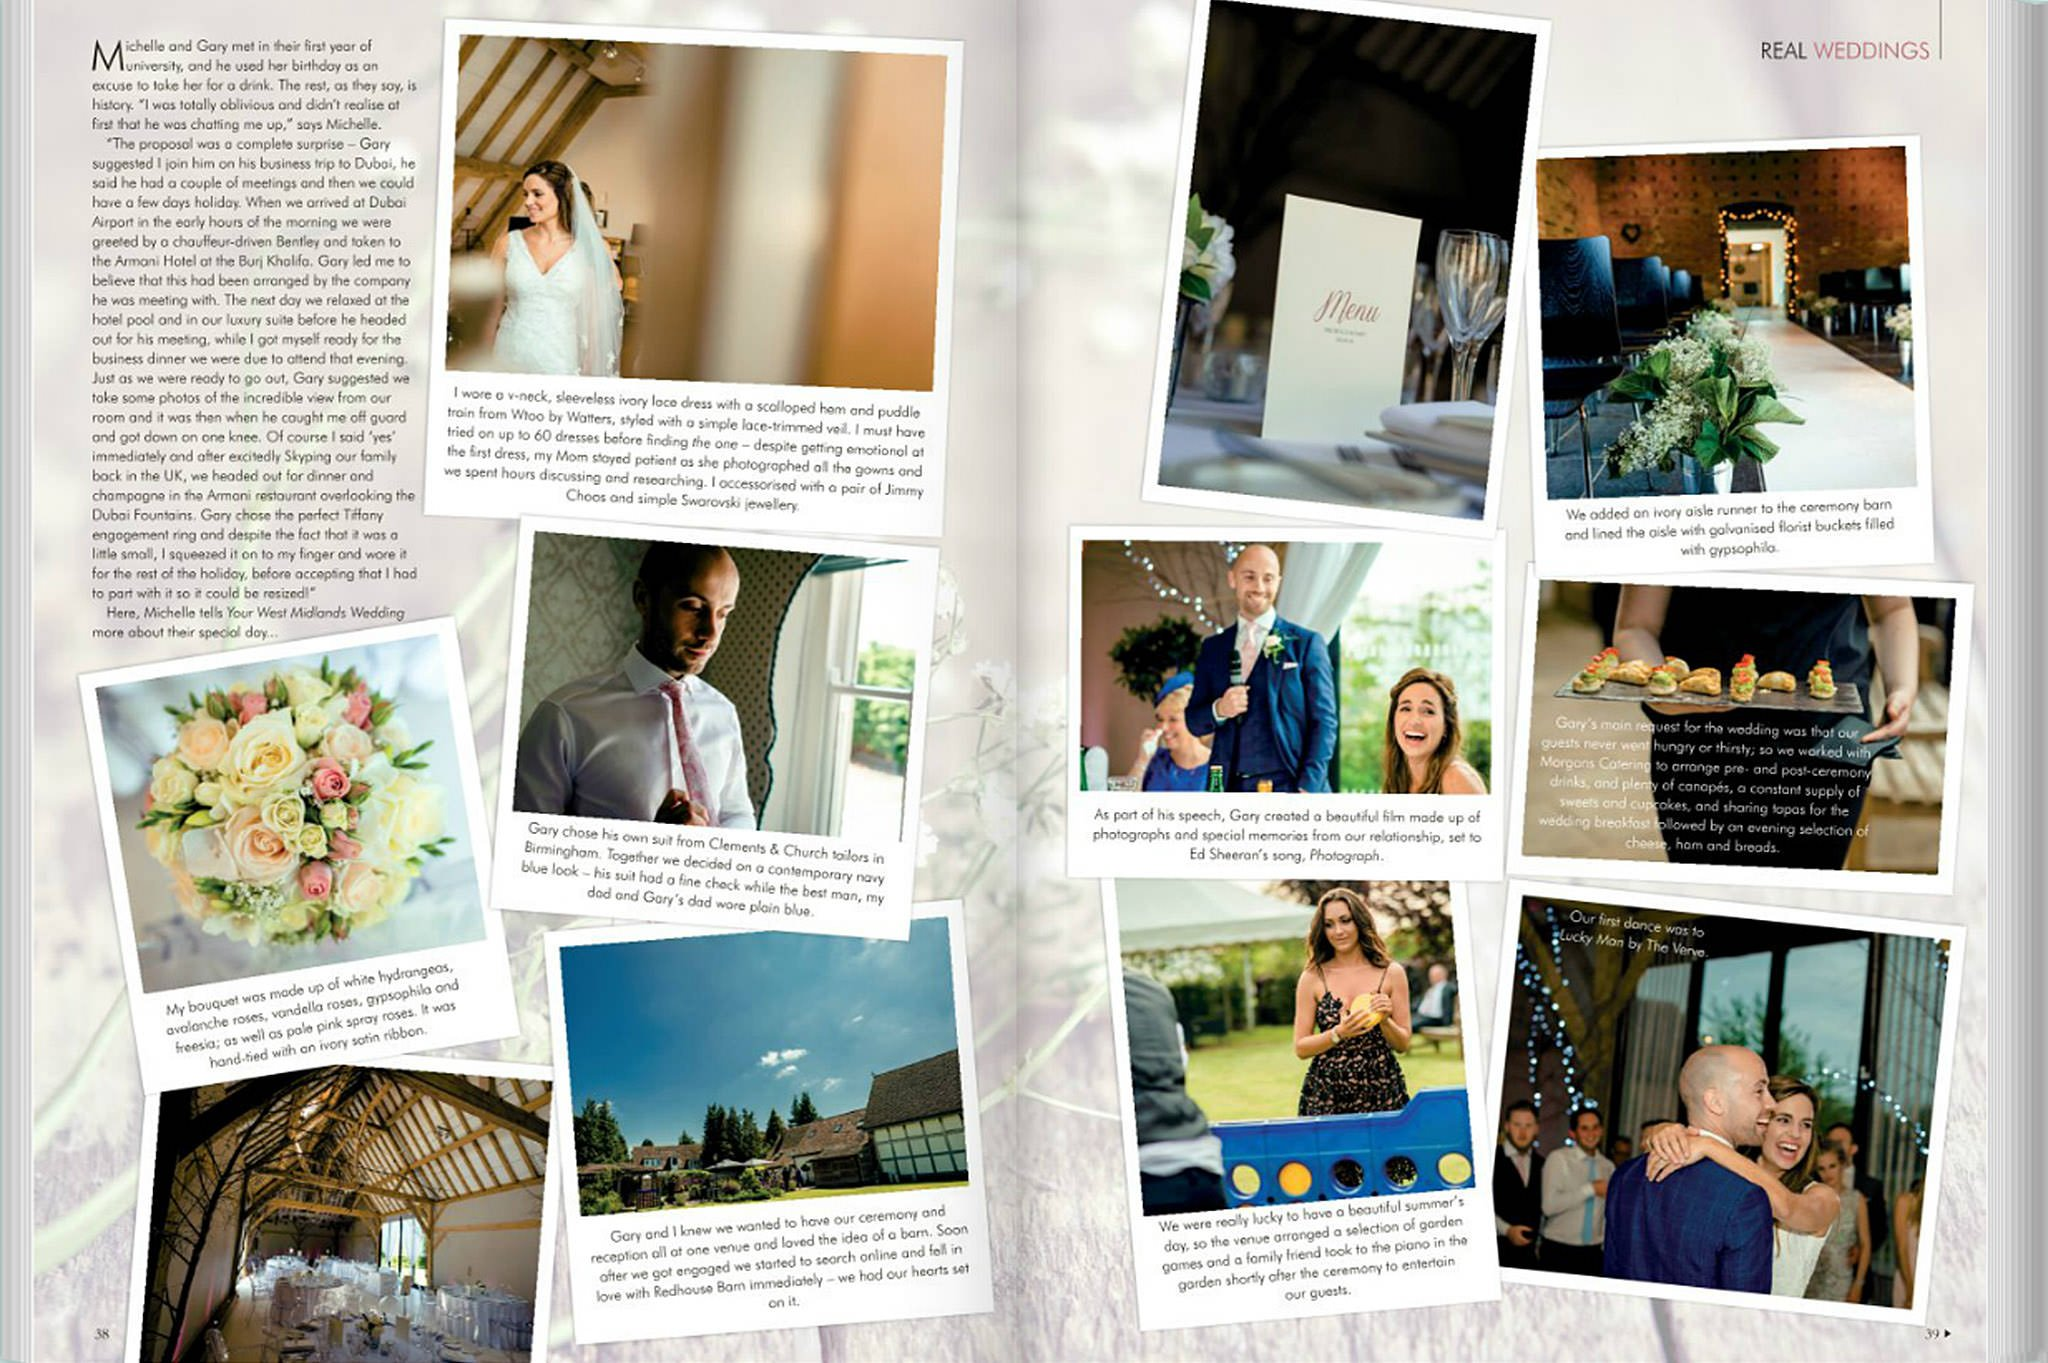 Gary & Michelle's special day featured in Your West Midlands wedding magazine 2